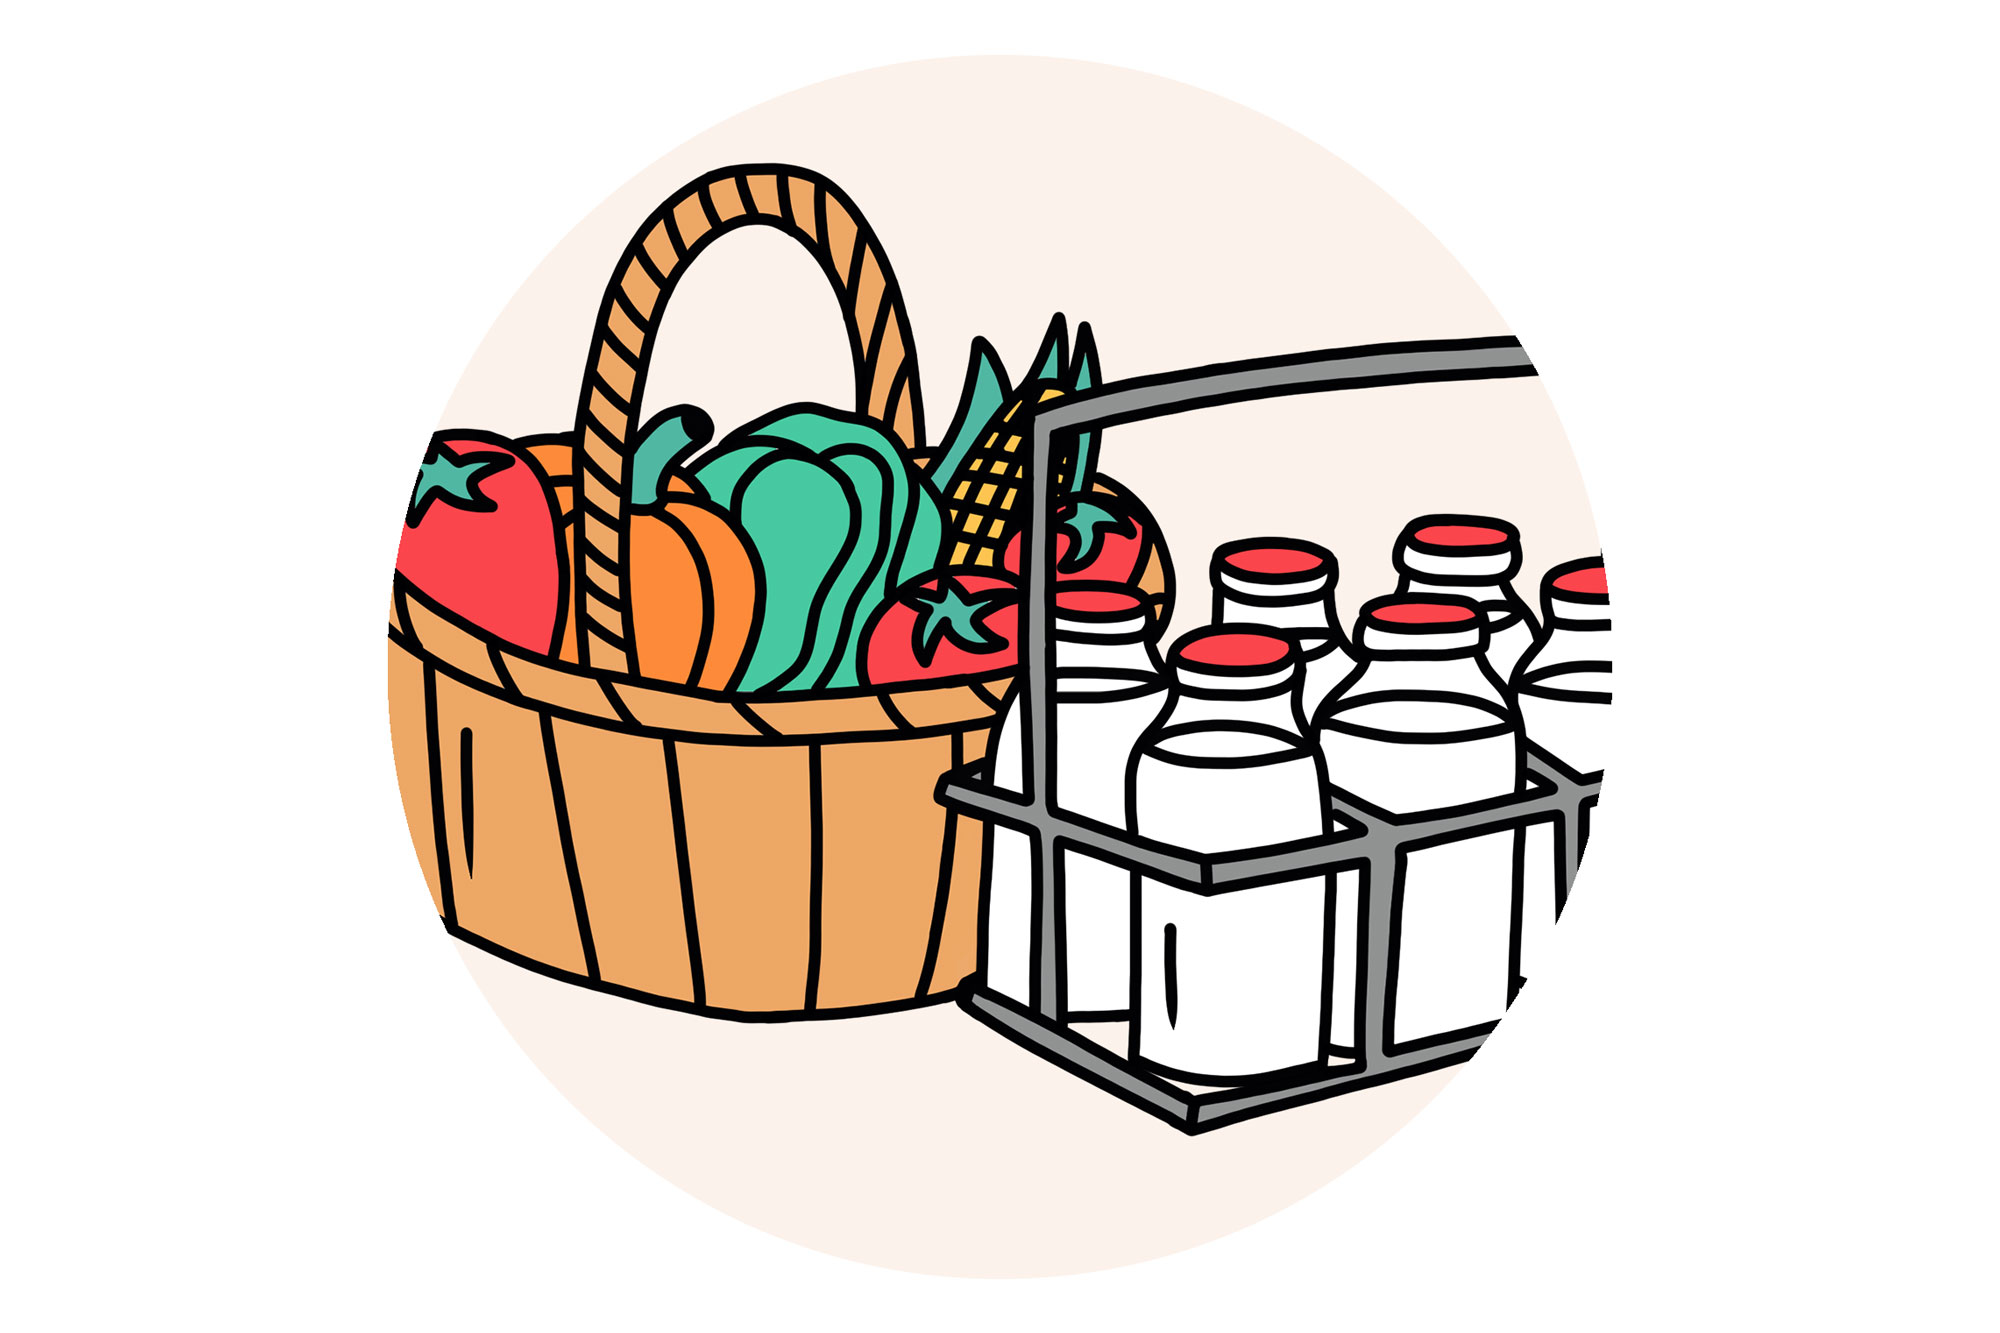 Illustration of produce and milk